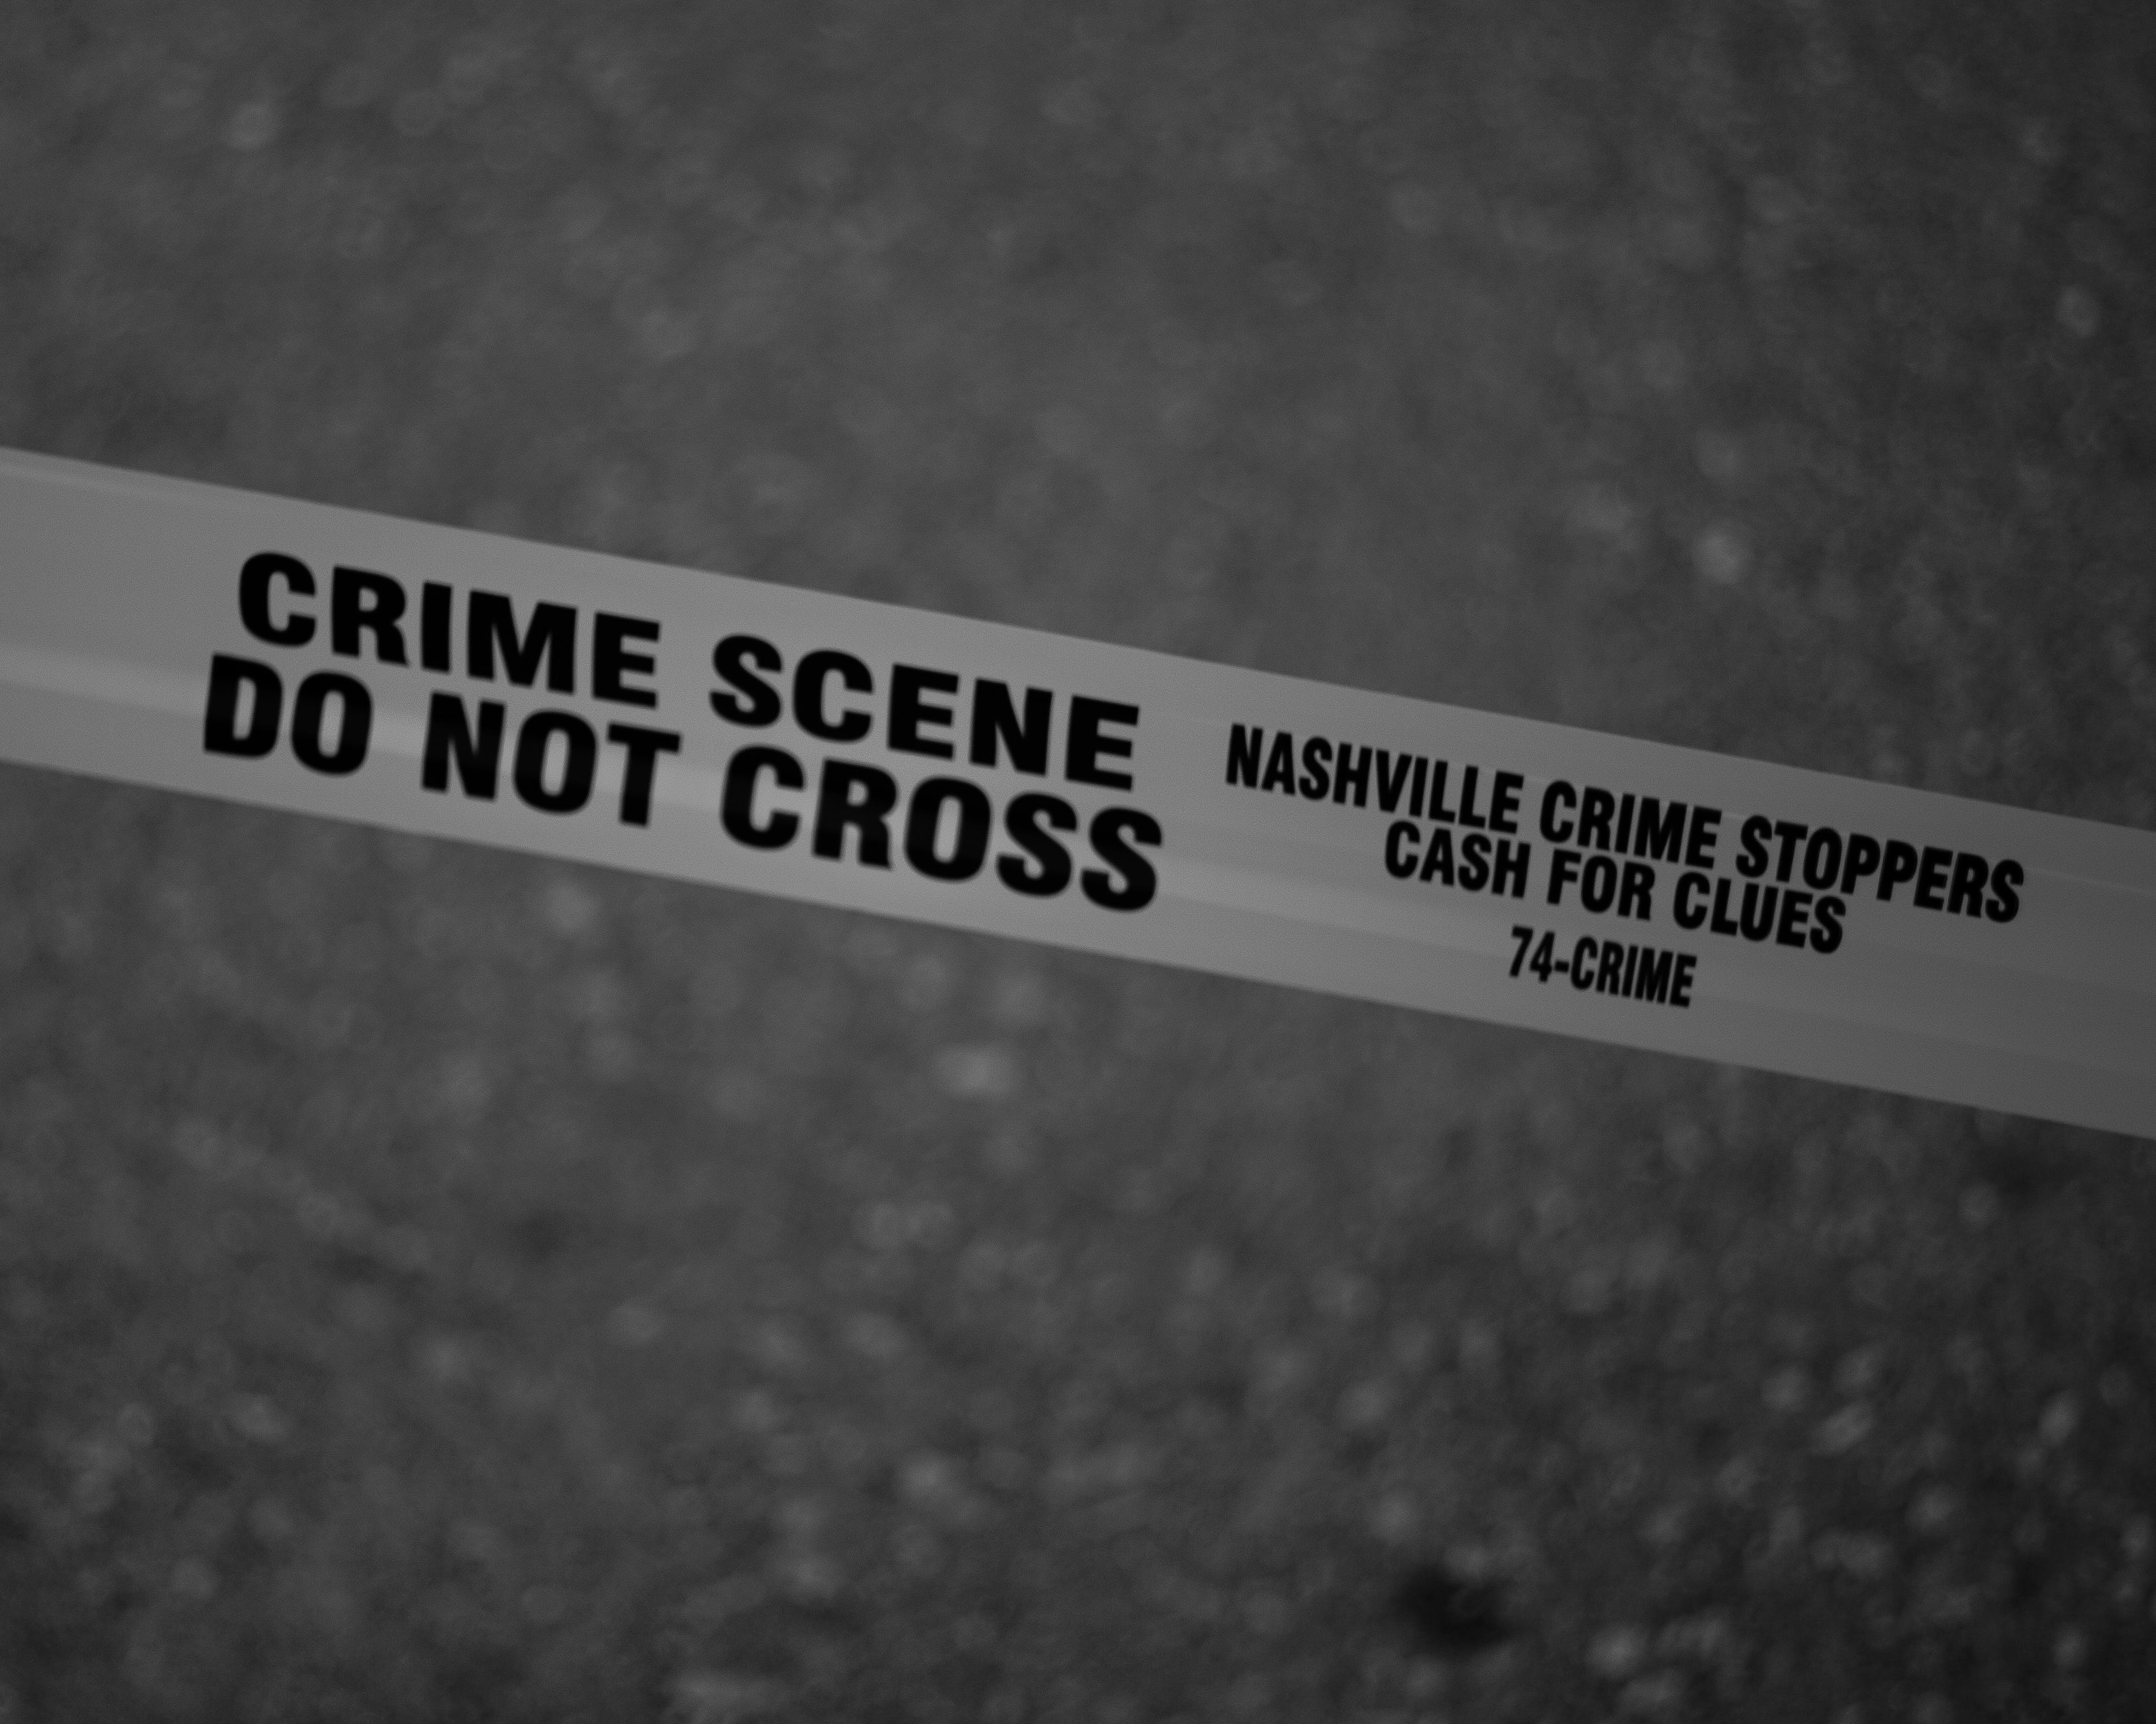 Grayscale Photo of Crime Scene Do Not Cross Tape